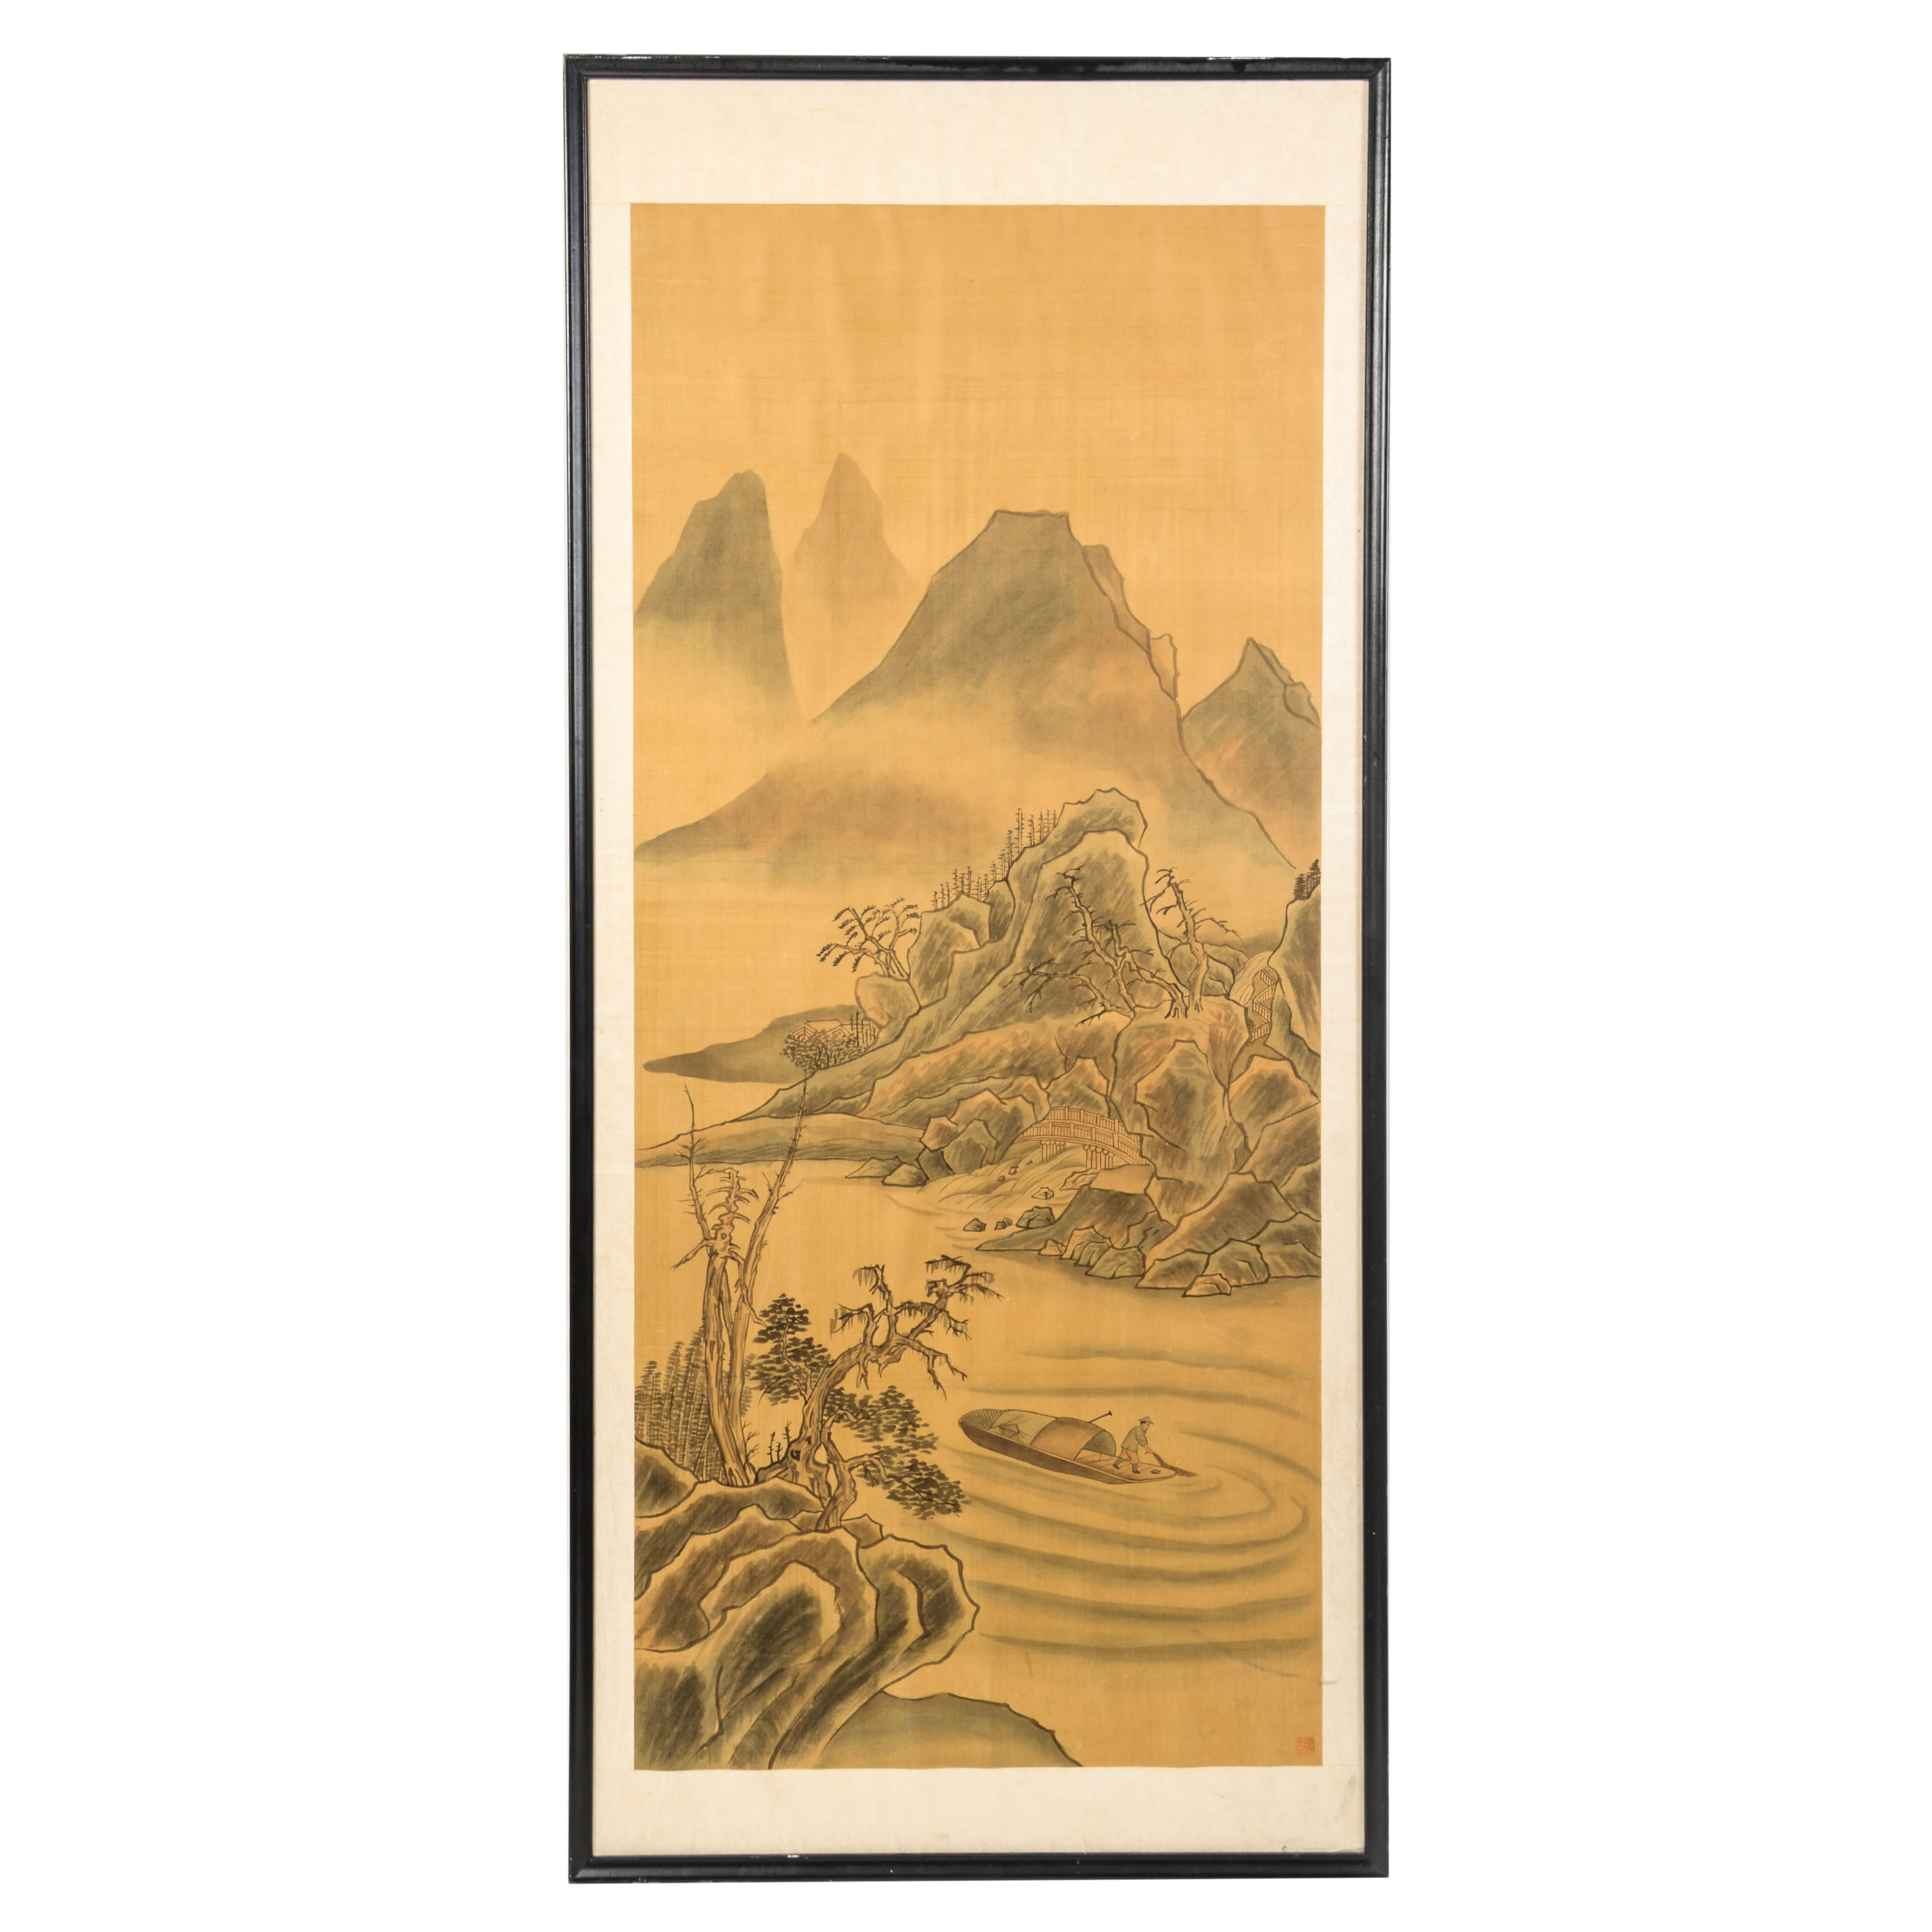 East Asian Ink Wash Painting of a Fisherman